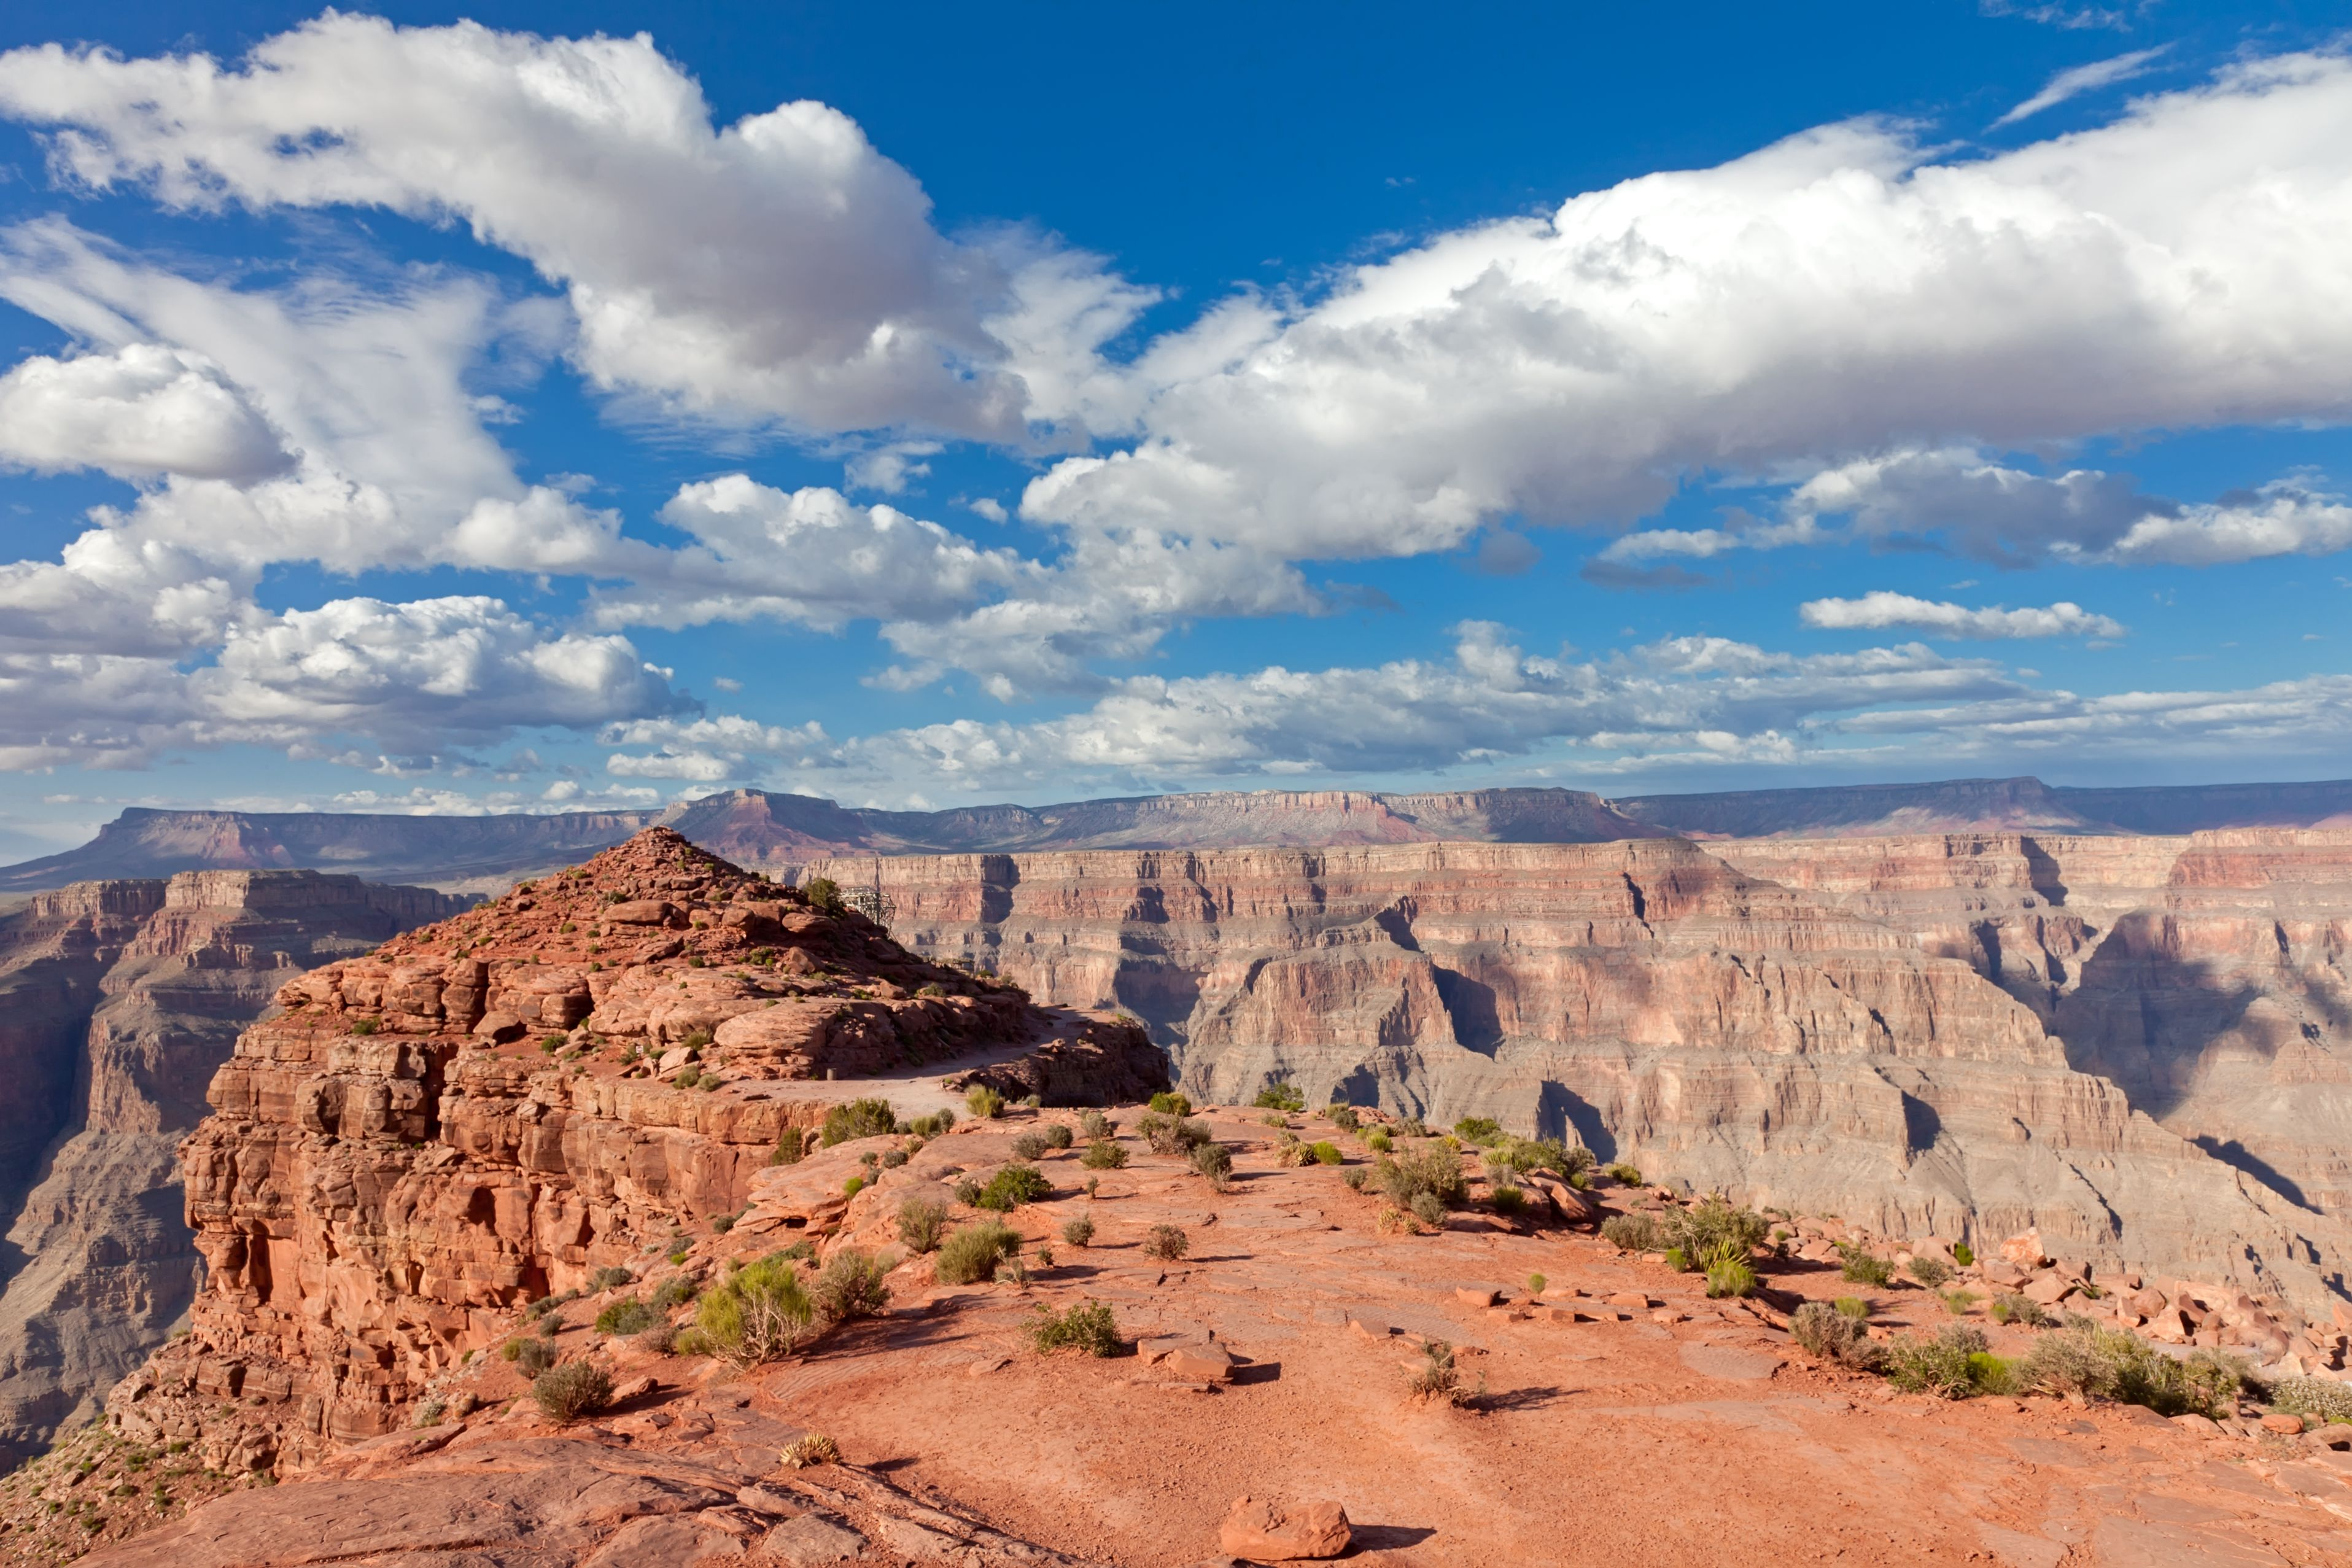 las vegas helicopter tours grand canyon wine with Grand Canyon West Rim Indian Adventure Helicopter Tour on Grand Canyon Sedona And Navajo Indian Reservation Tour in addition Locationphotodirectlink G45963 D552952 I135907508 Adventure photo tours Las vegas nevada furthermore LocationPhotoDirectLink G45963 D552952 I174434245 Adventure Photo Tours Las Vegas Nevada besides Tours And Excursions furthermore Grand Canyon Helicopter And Valley Of Fire Ch agne Landing Flight.